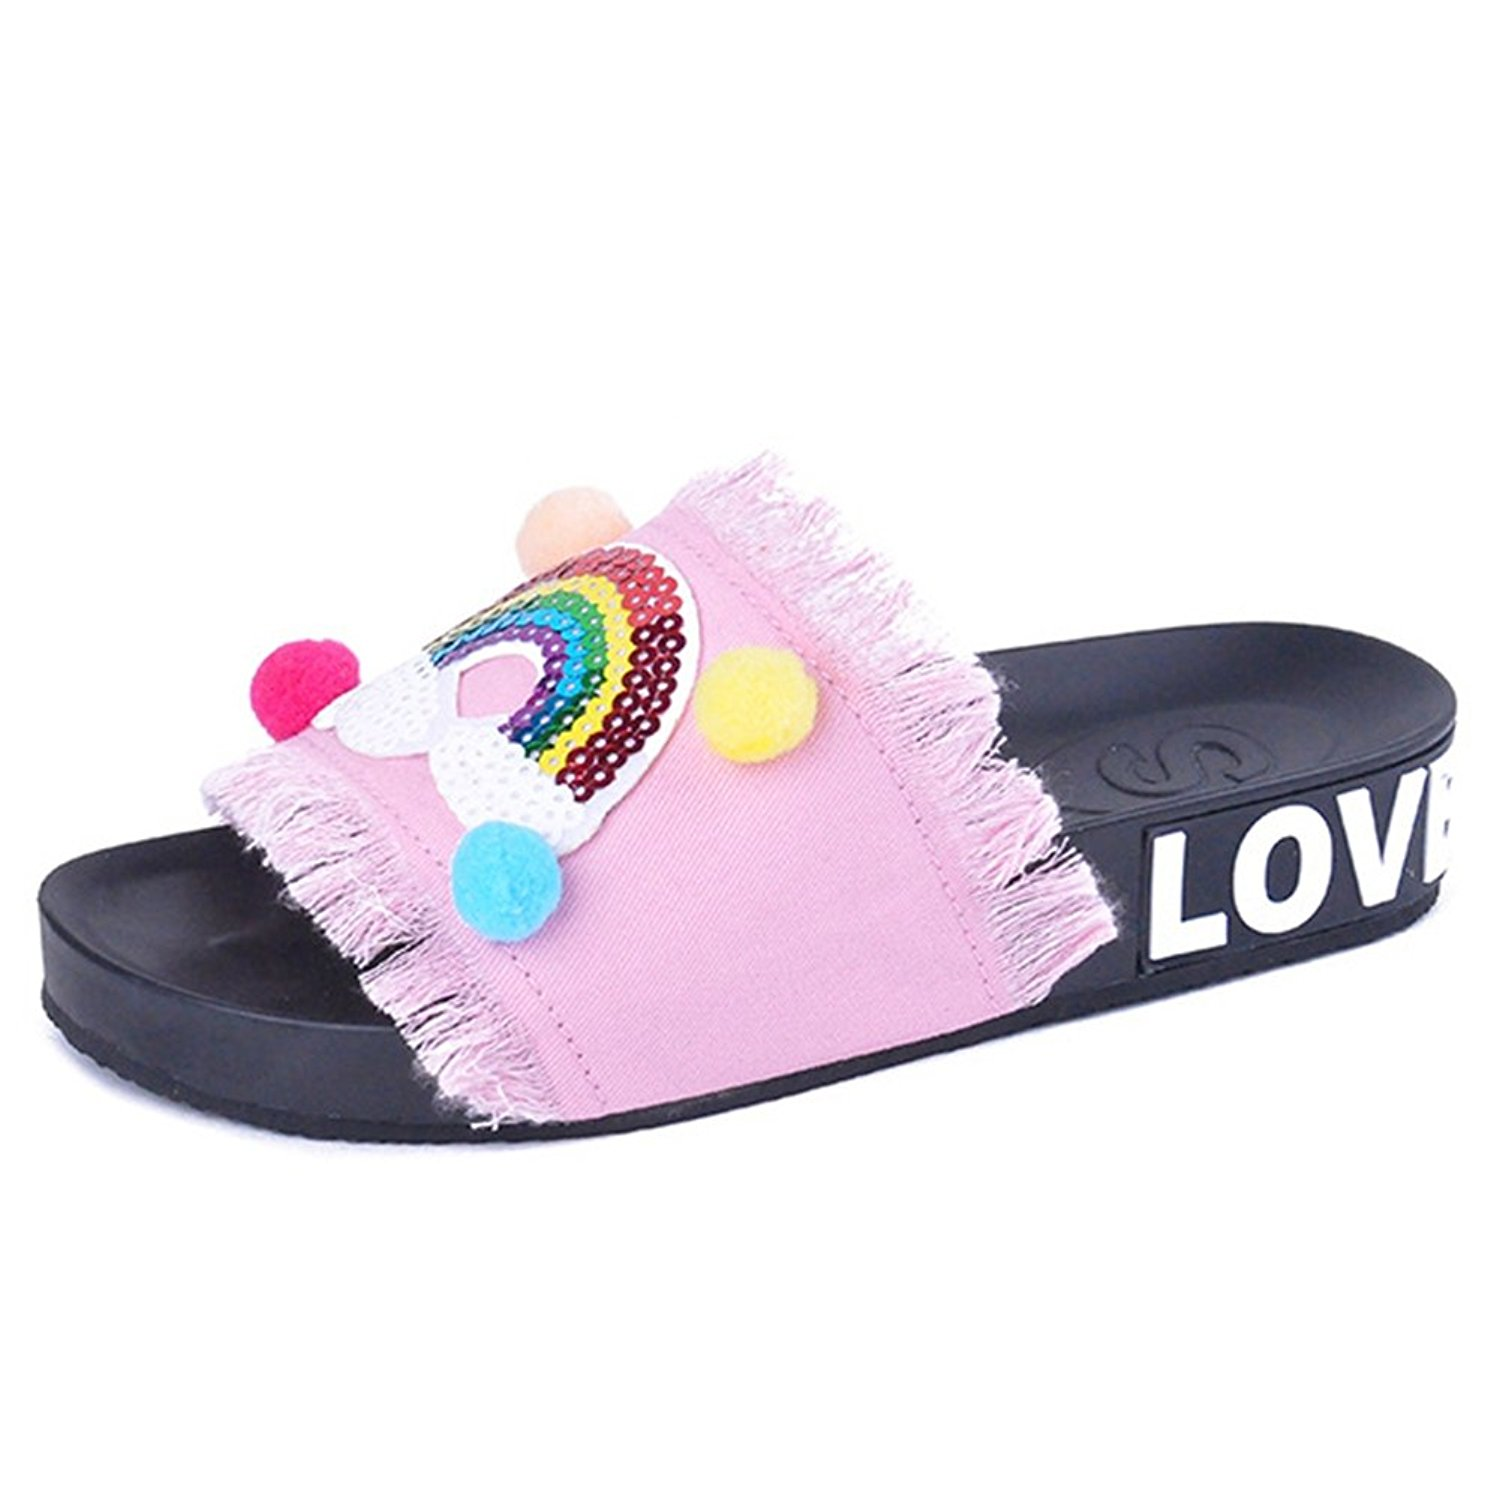 68af27ffdb4b Get Quotations · T-JULY Women s Summer Denim Slide Sandals Non Skid Colored  Ball Smiling Face Rainbow New